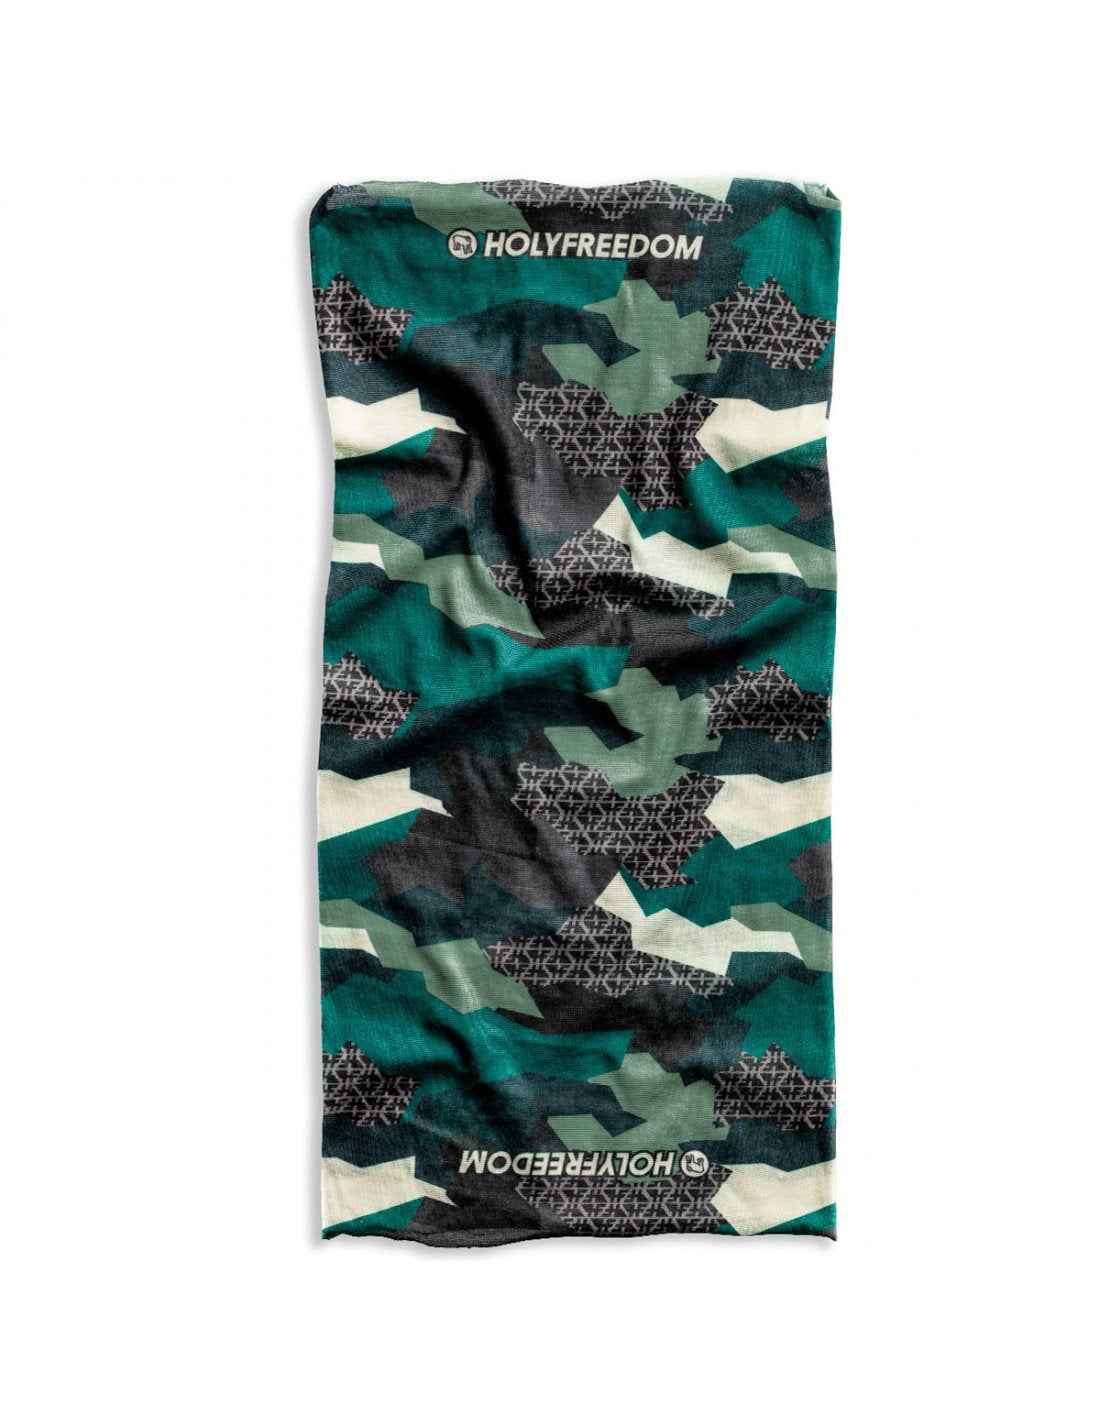 Holy Freedom Black Hawk Bandana Tube